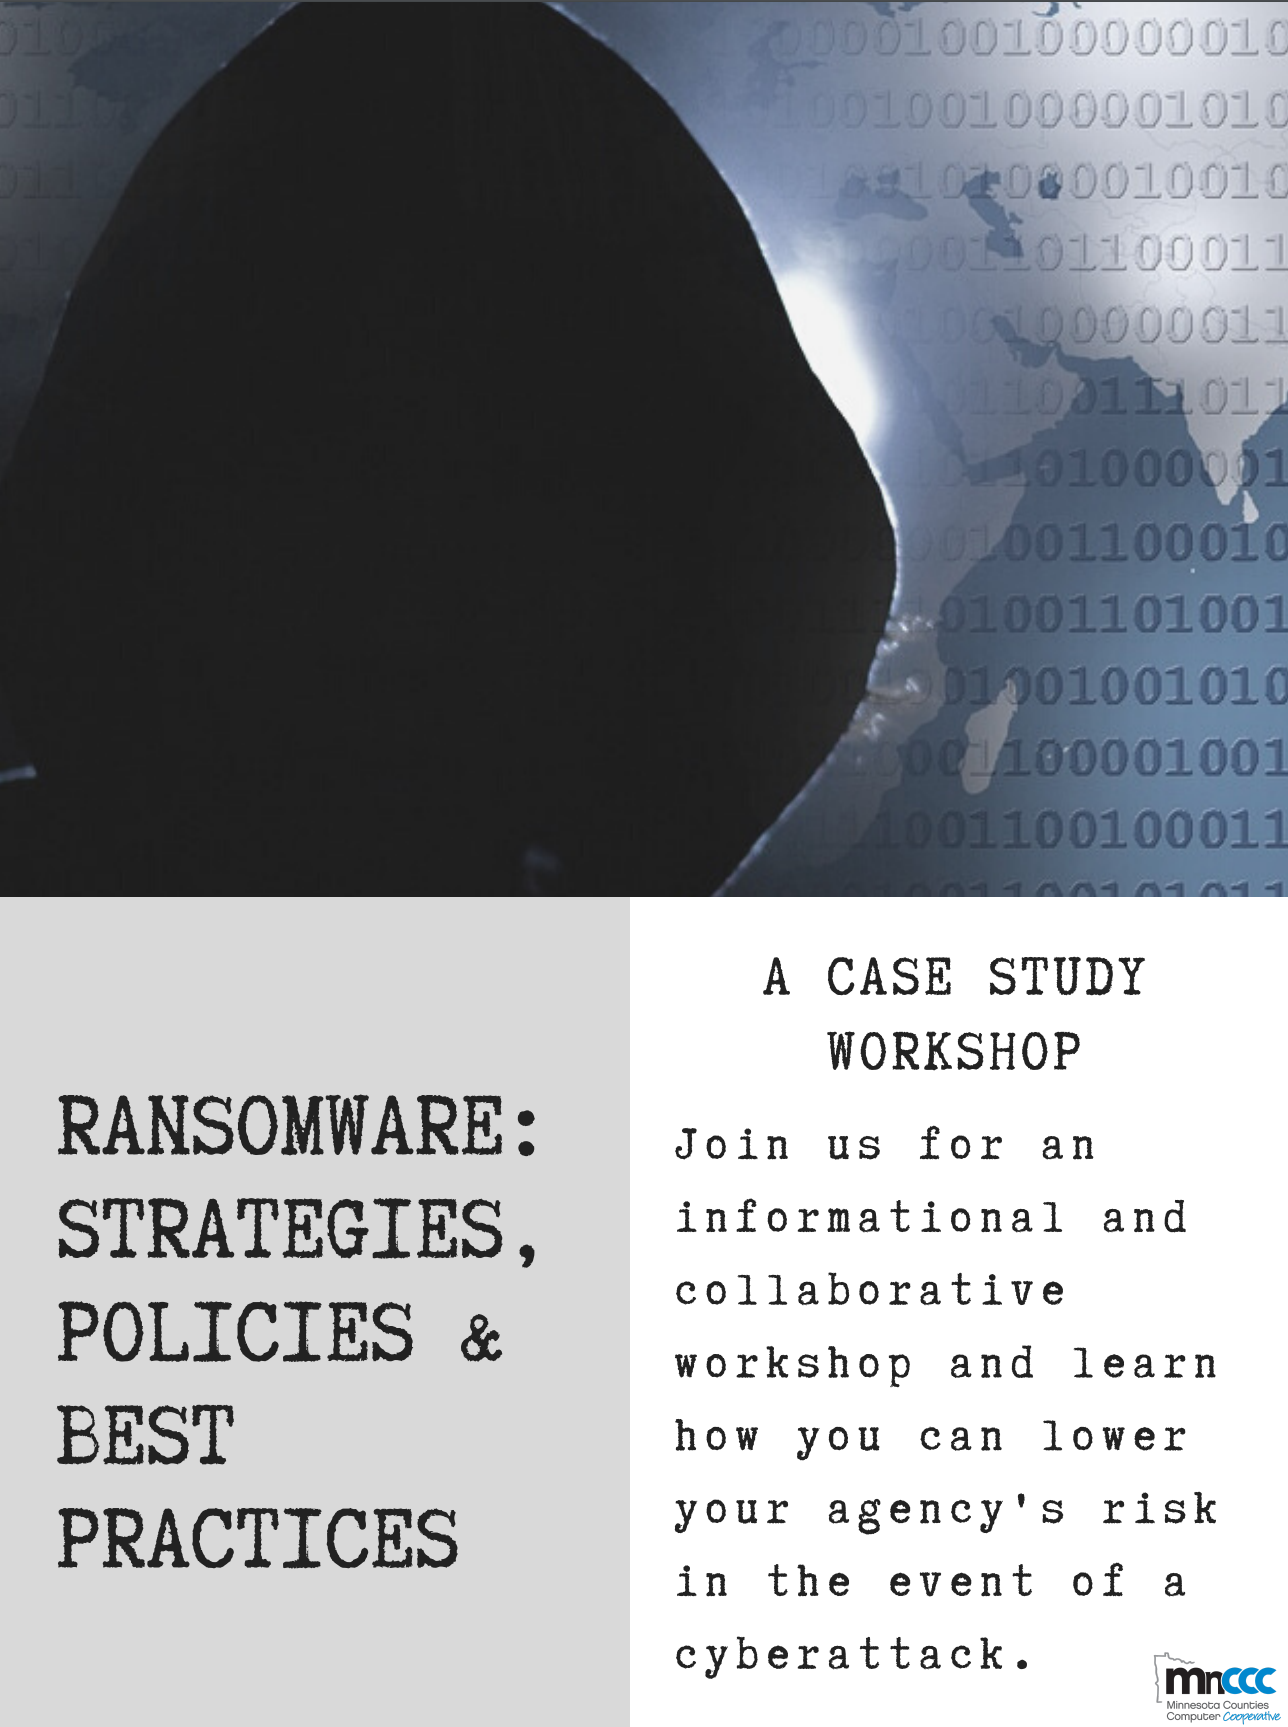 Ransomware: Strategies, Policies, and Best Practices - Join us for an informational and collaborative workshop and learn how you can lower your agency's risk in the event of a cyberattack.